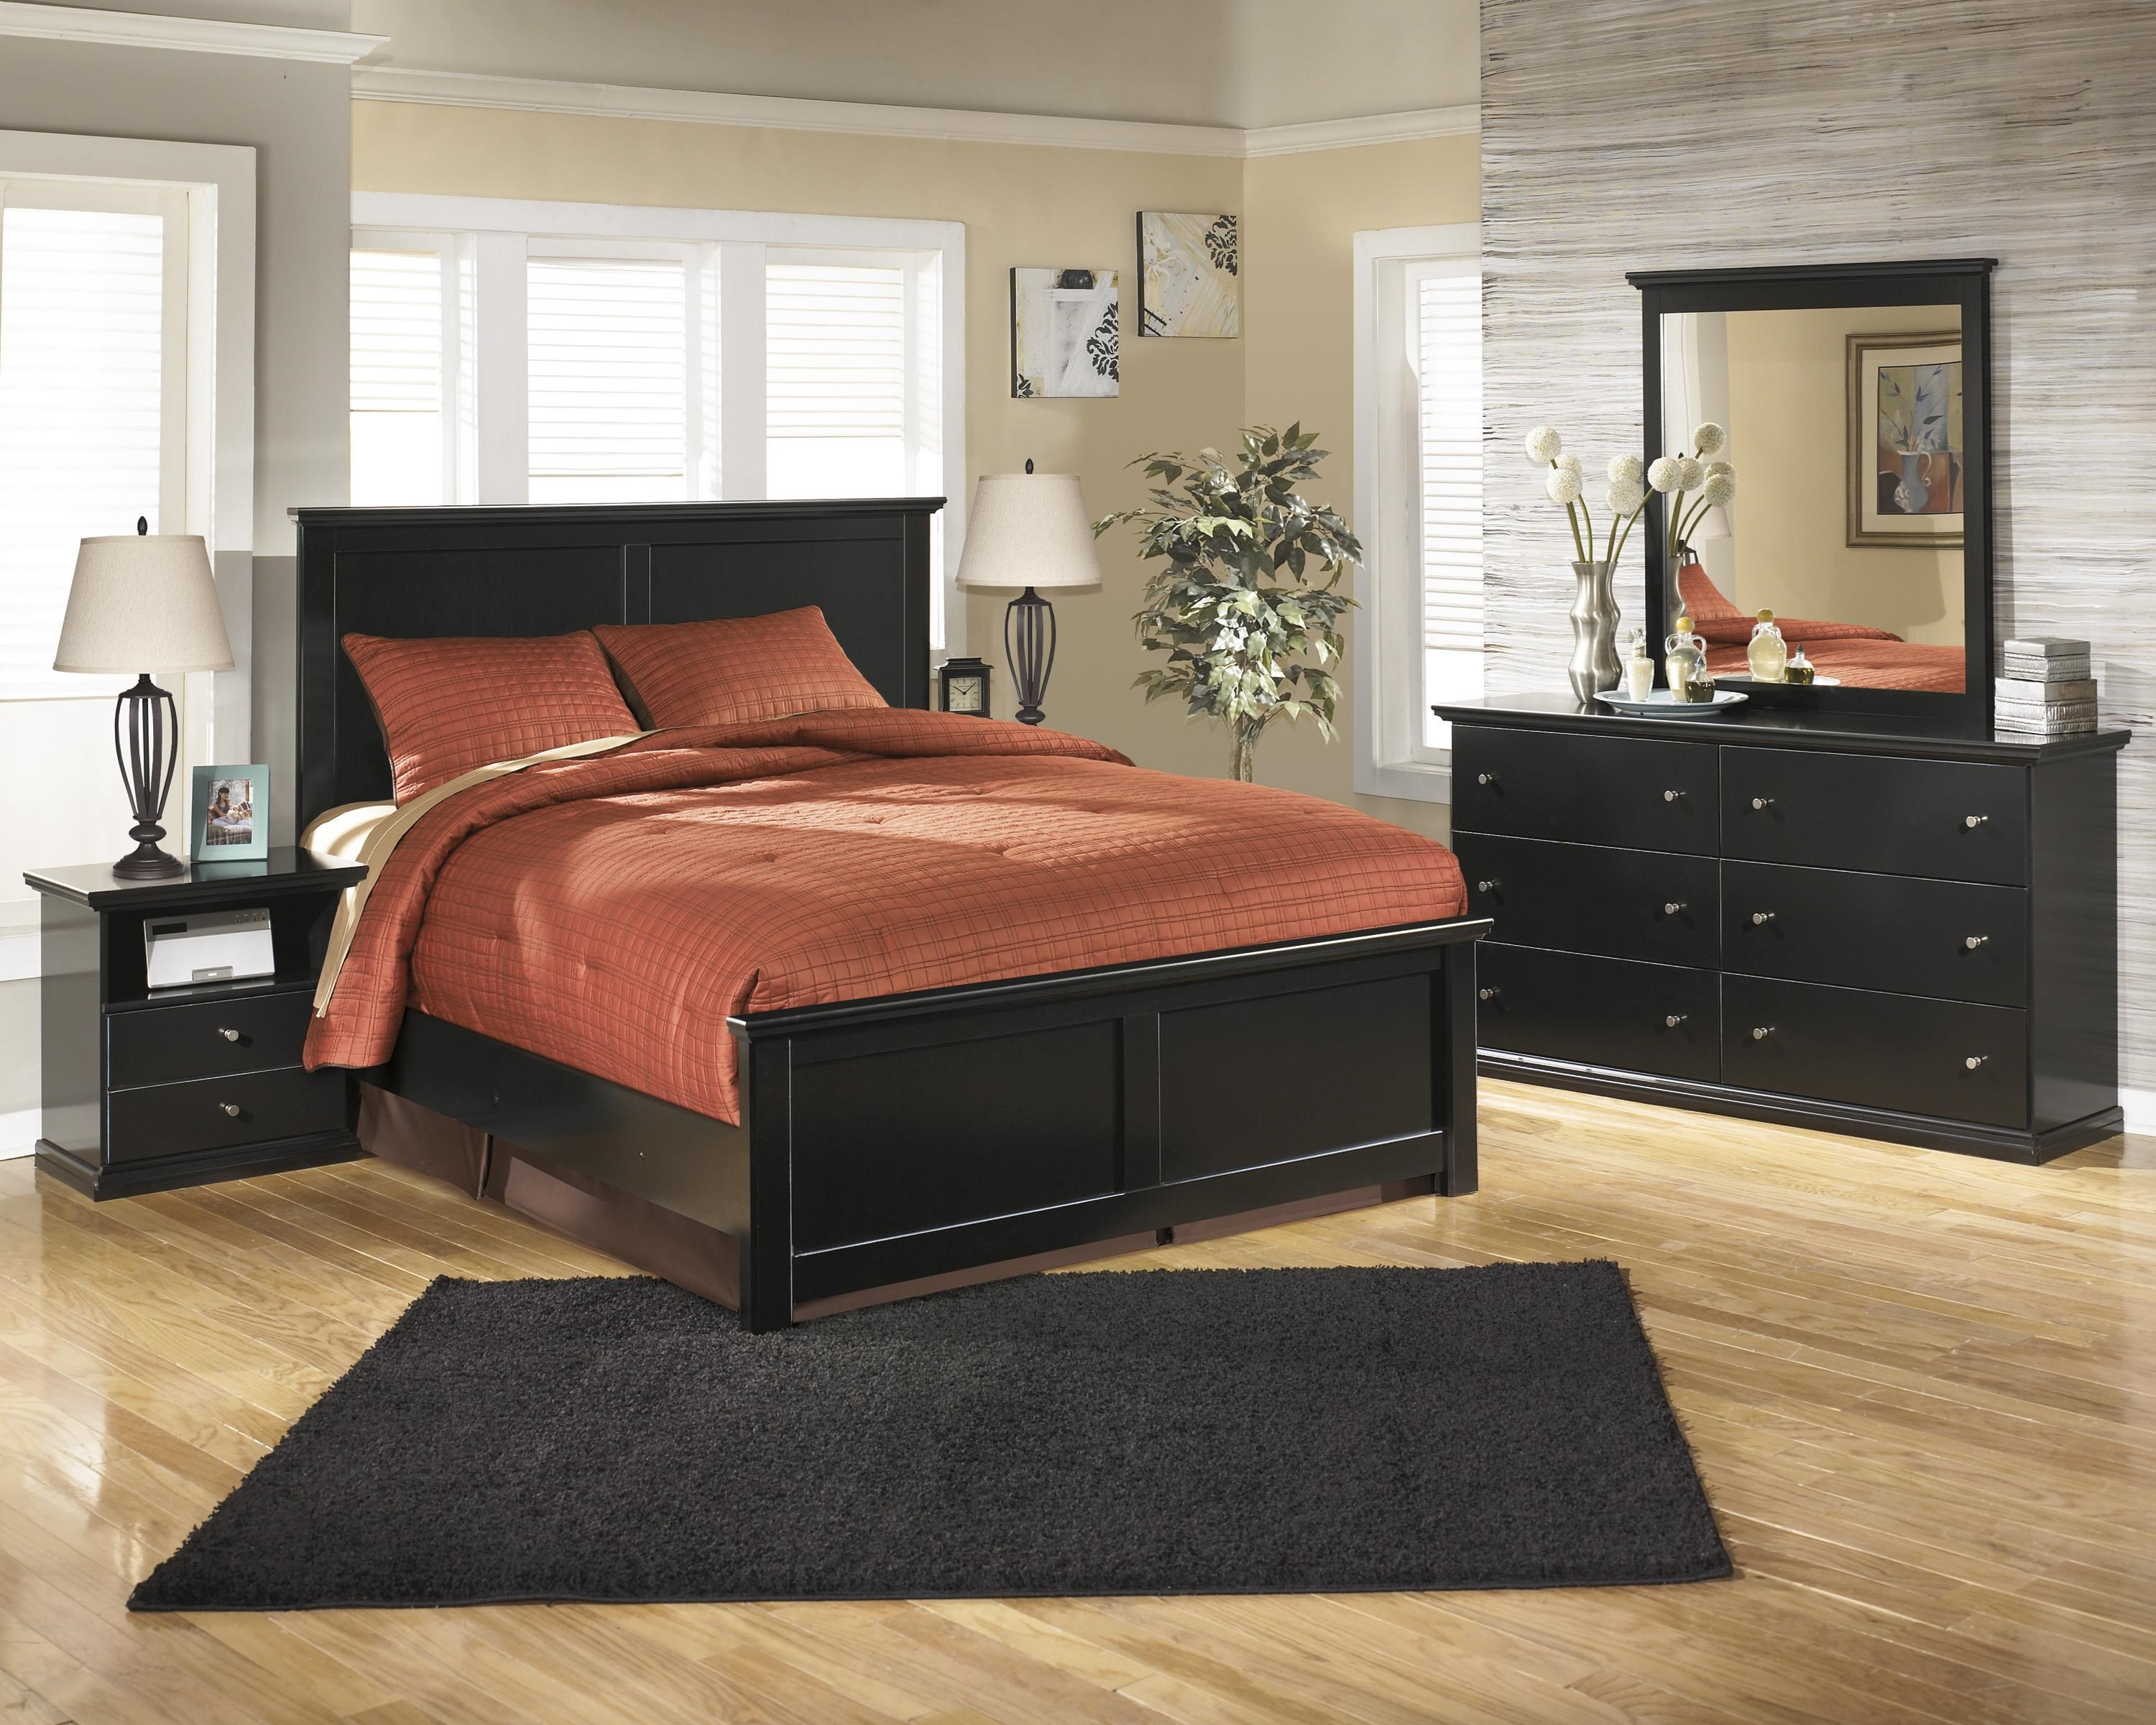 Twin Panel Bed, Dresser, Mirror and Nightst